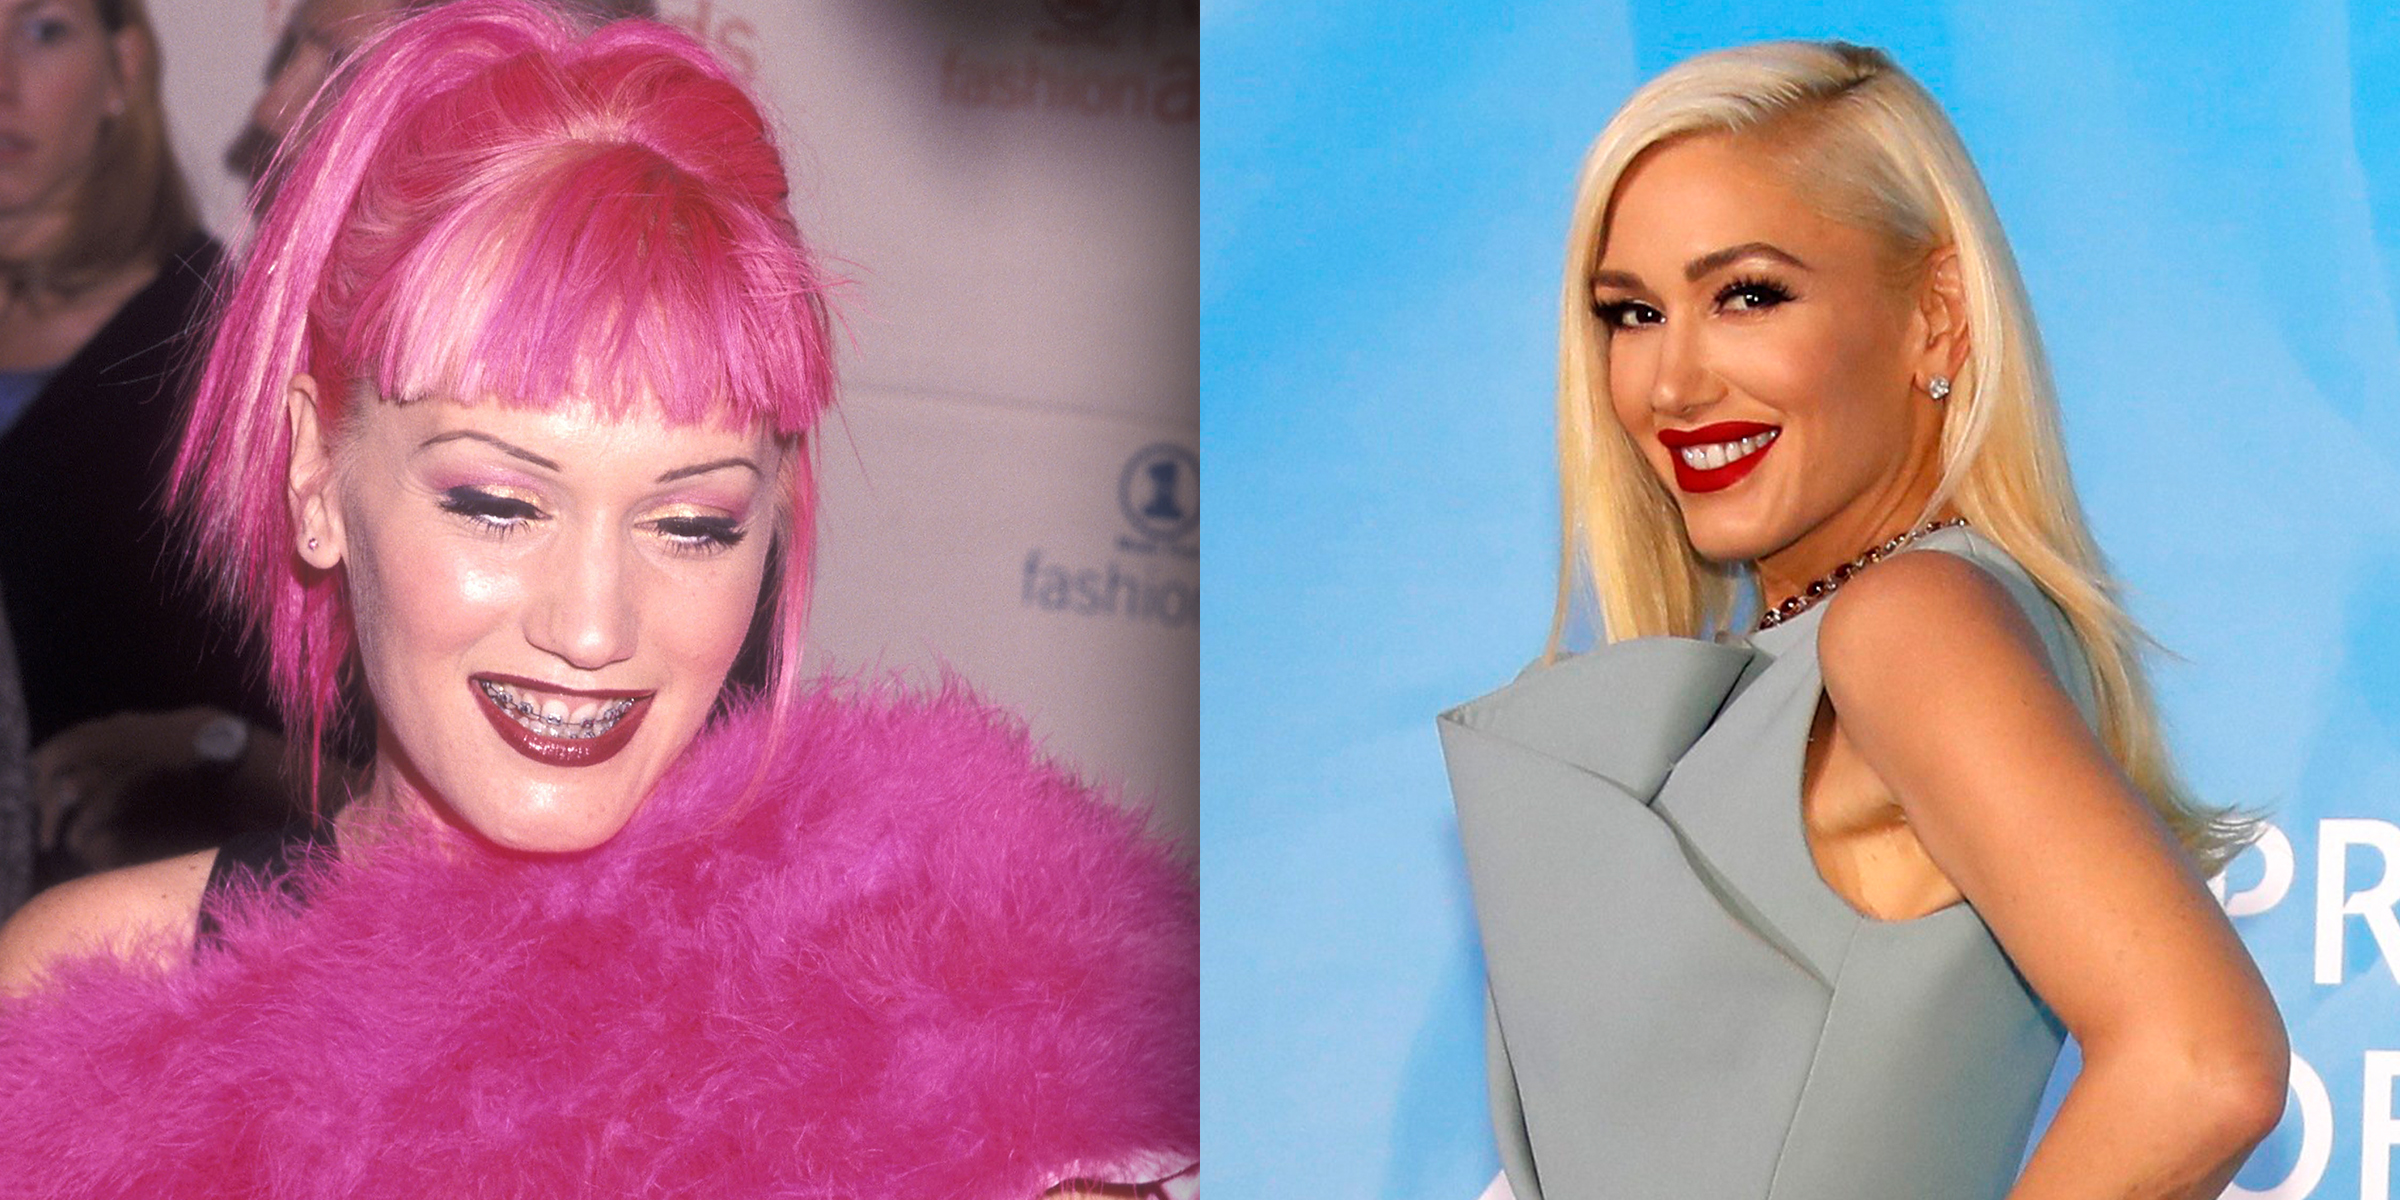 Gwen Stefani reflects on her pink hair and braces (and other